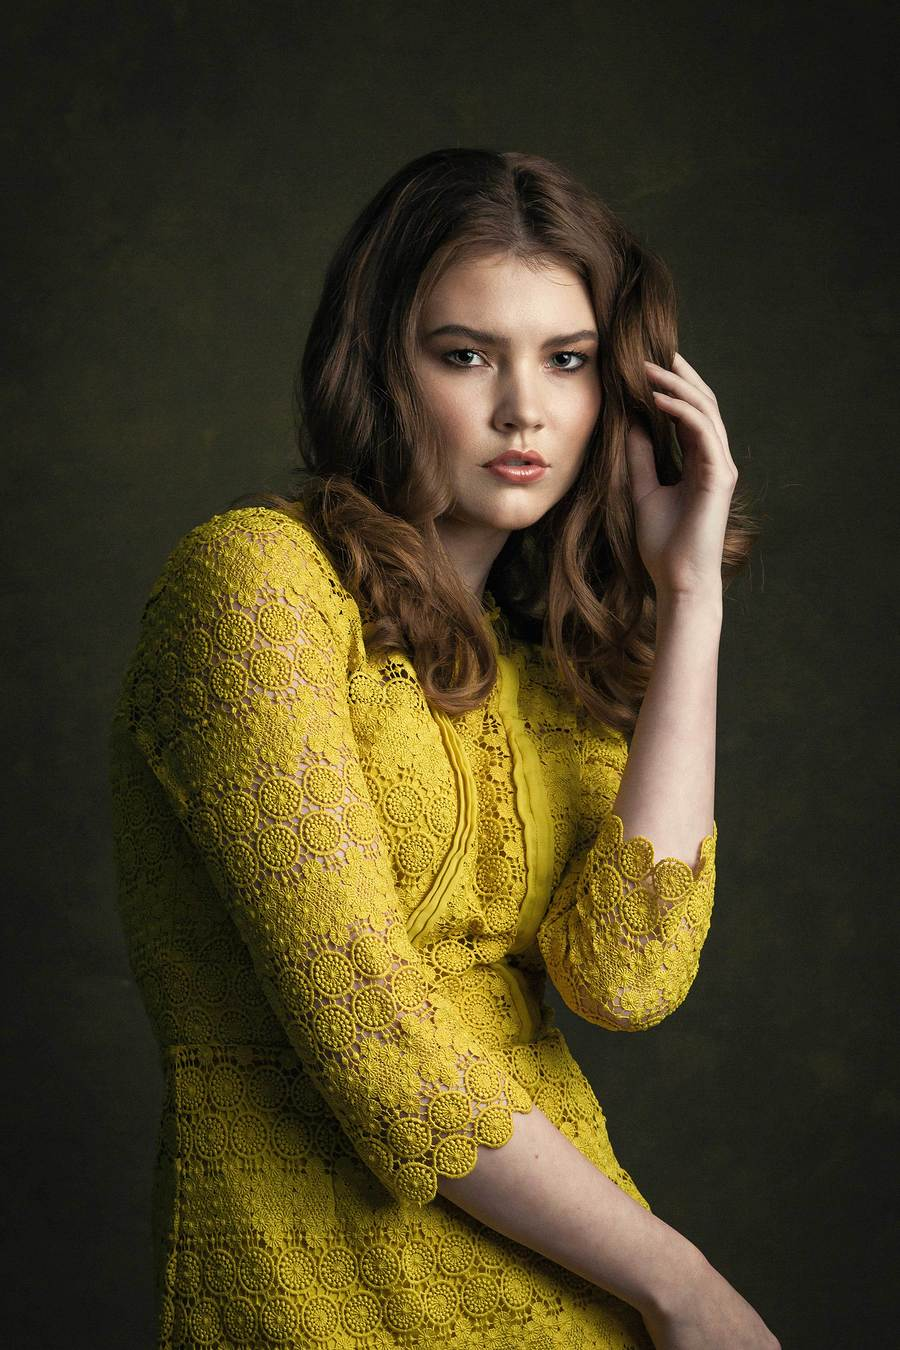 Chloe / Photography by Grewy, Model Chloe., Makeup by Natalie Wood, Post processing by Grewy, Taken at Grewy, Hair styling by Natalie Wood / Uploaded 2nd November 2018 @ 06:46 PM